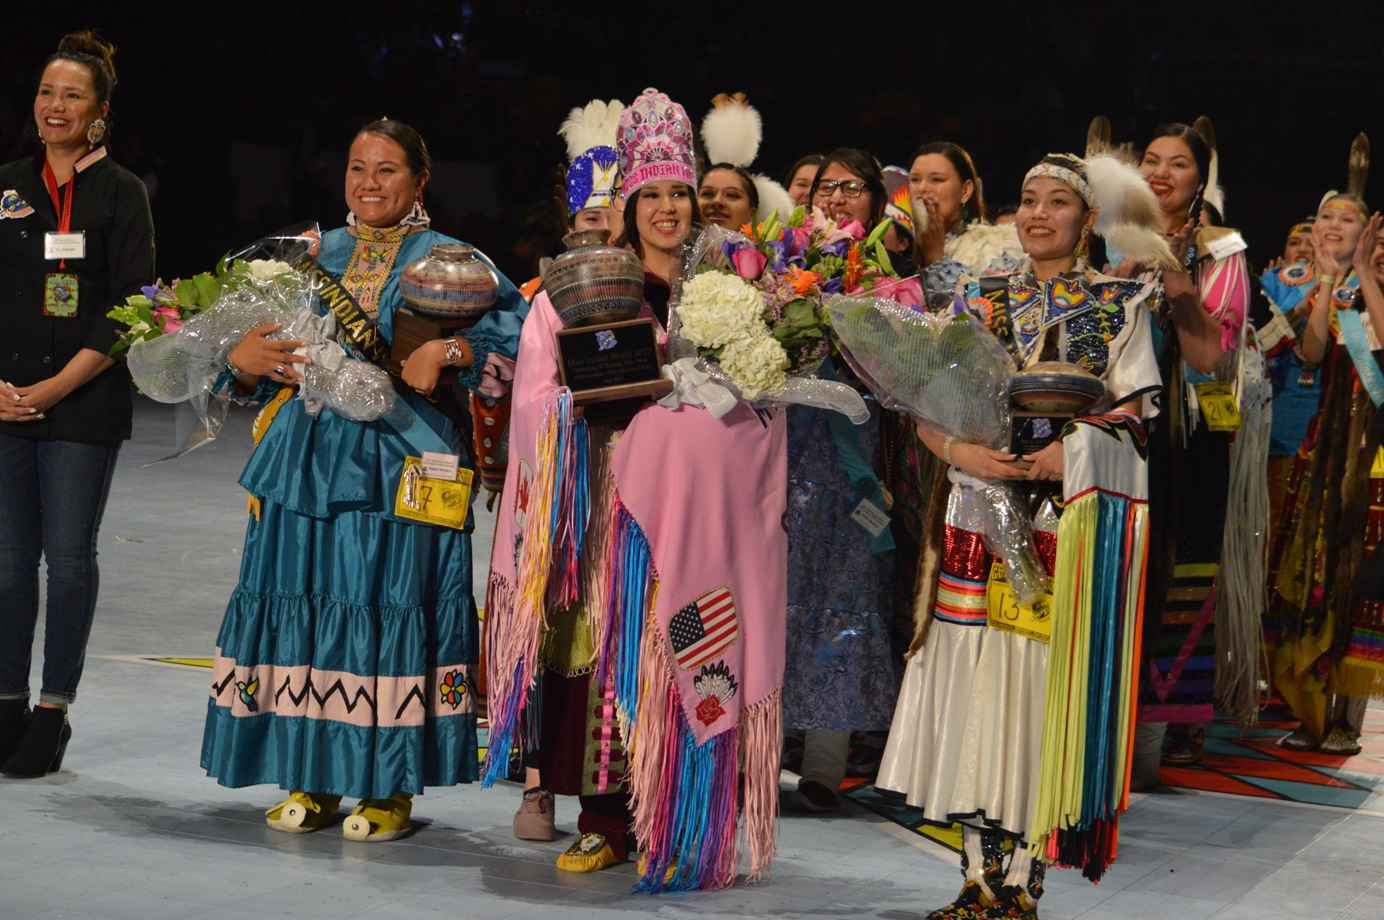 Raven Swamp was among 24 Indigenous young women competing for Miss Indian World 2017. (Courtesy Michelle Johnson)